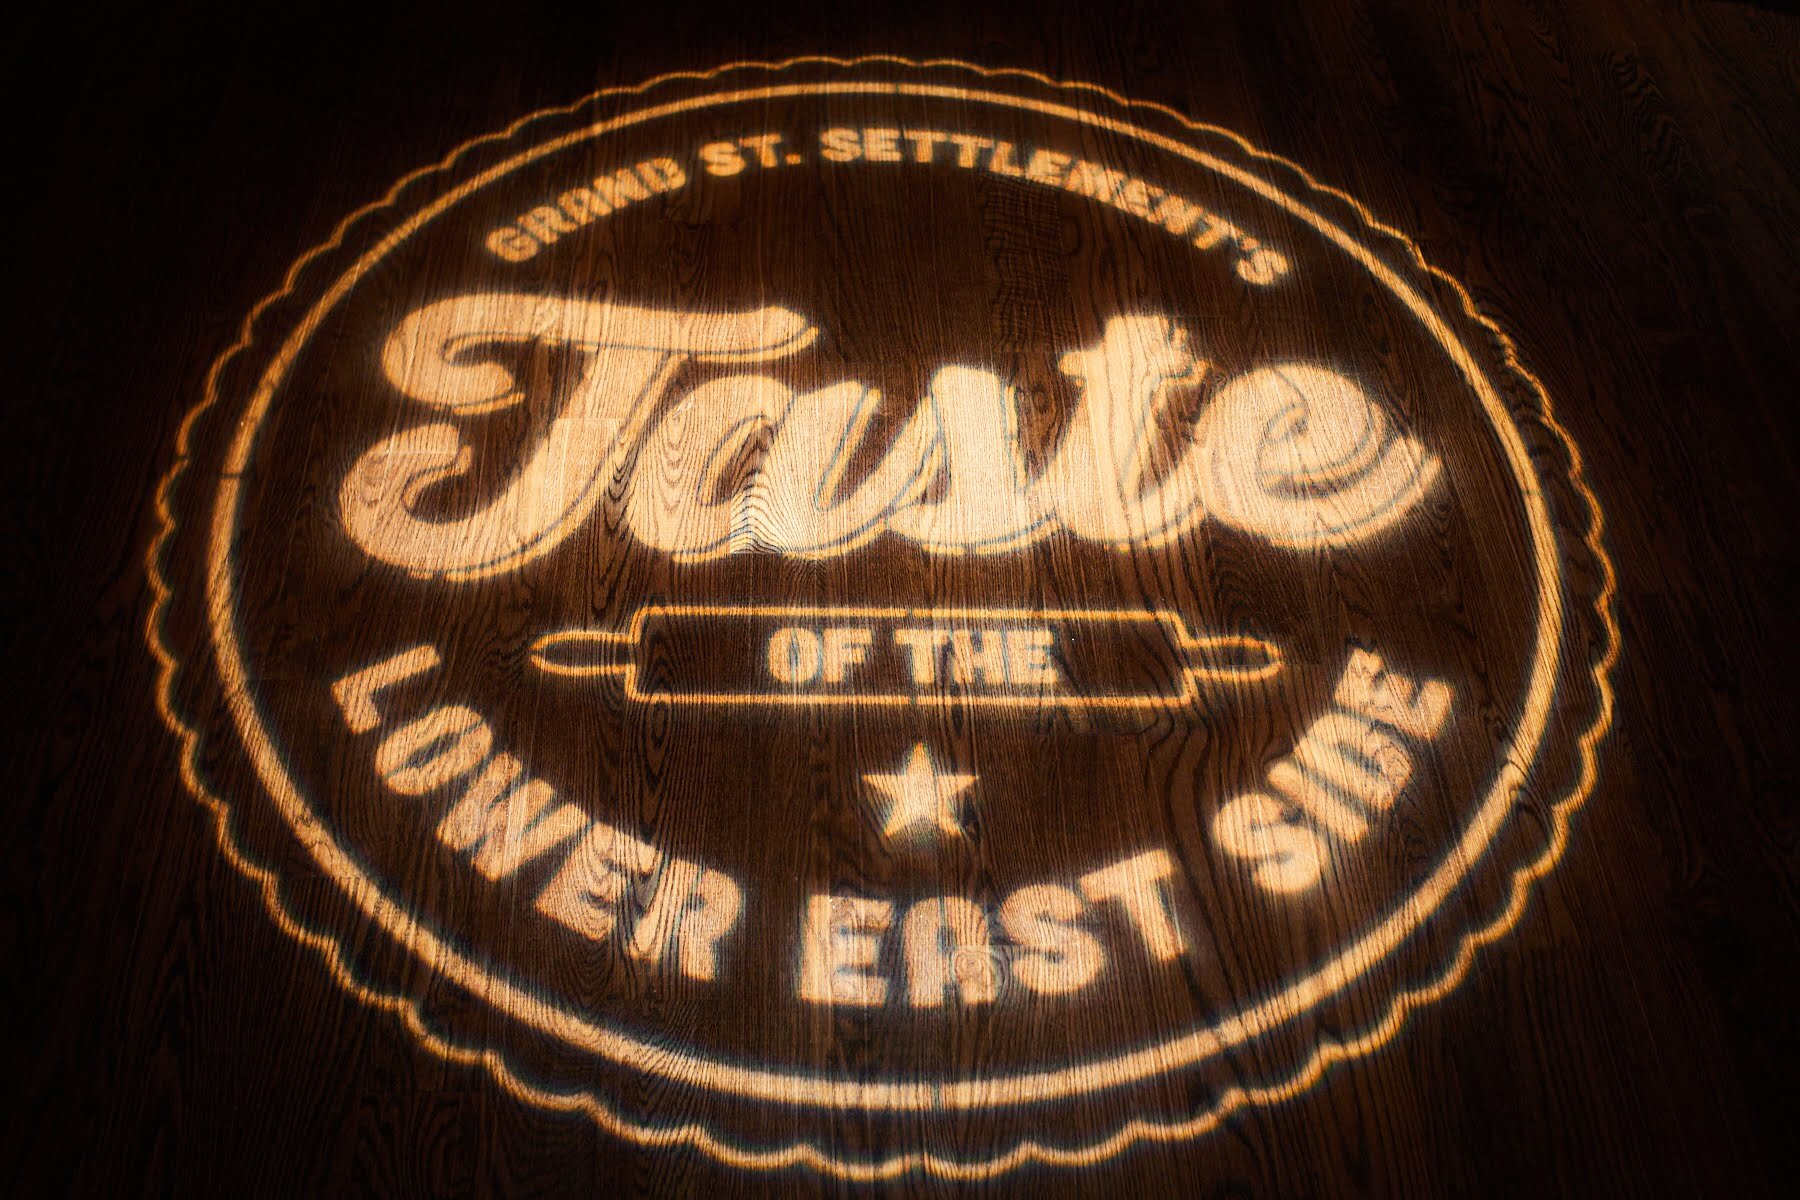 19th Annual Taste of the Lower East Side